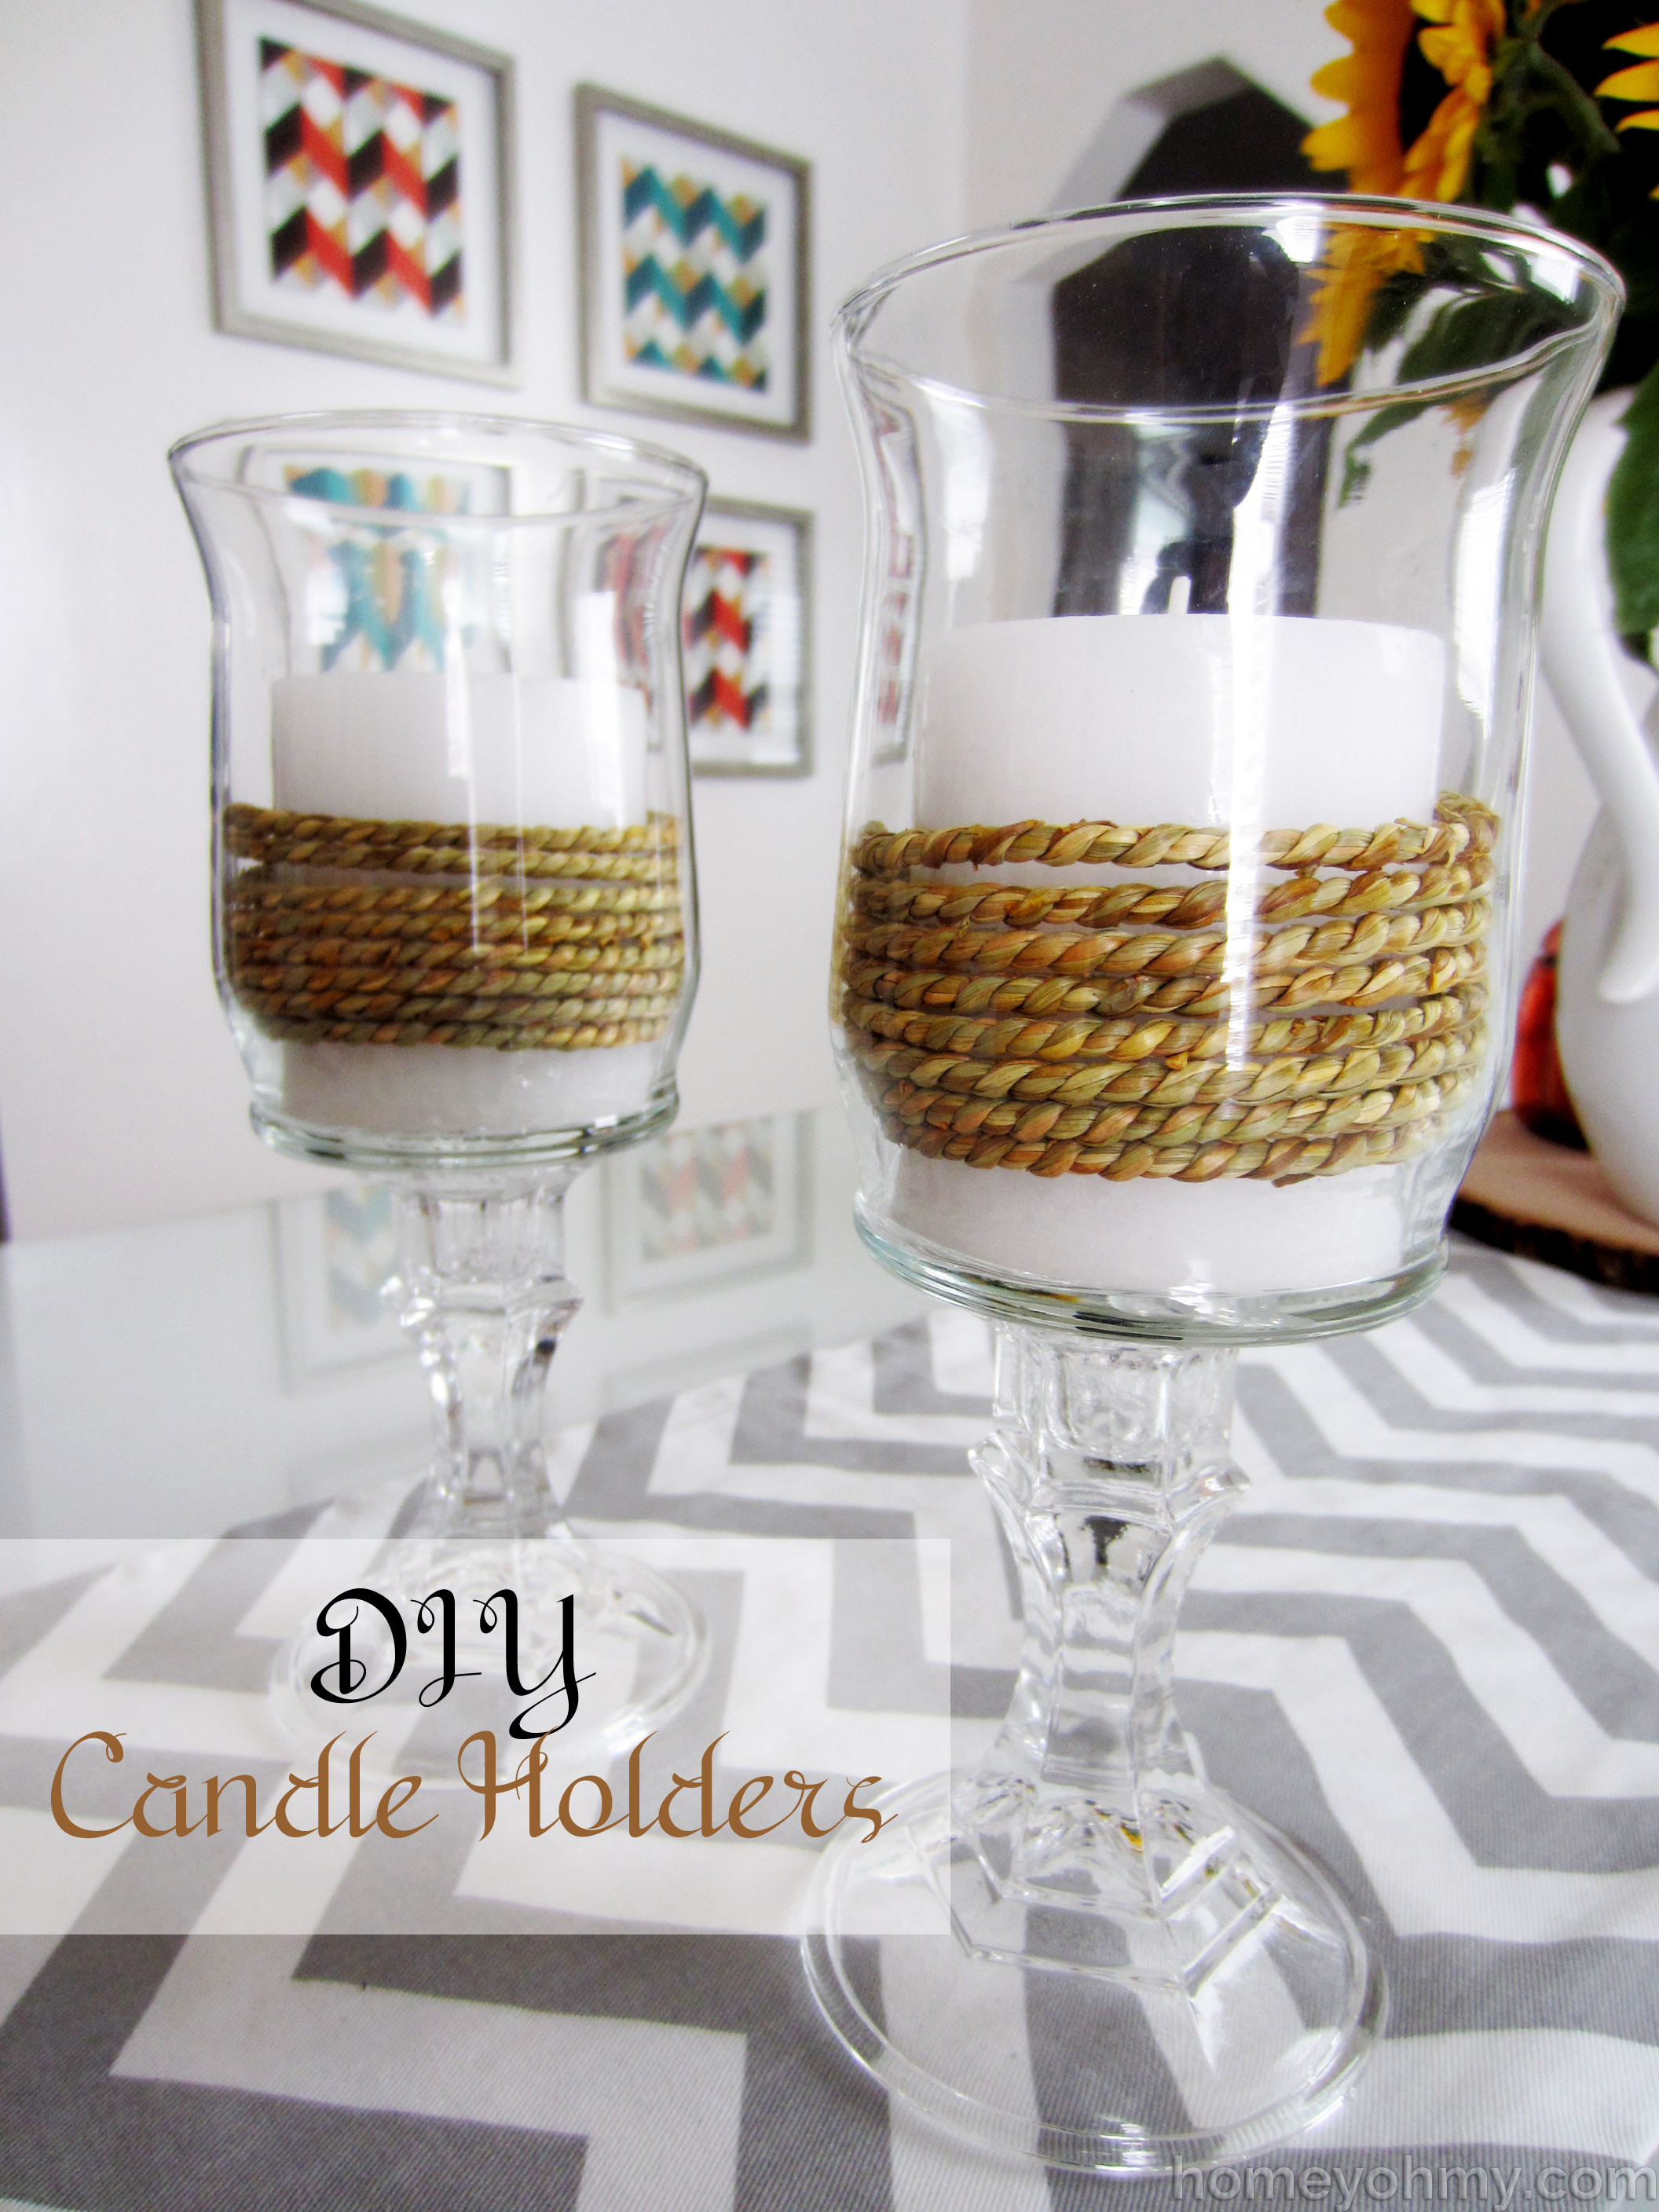 Best ideas about DIY Candle Holders . Save or Pin DIY Candle Holders Homey Oh My Now.